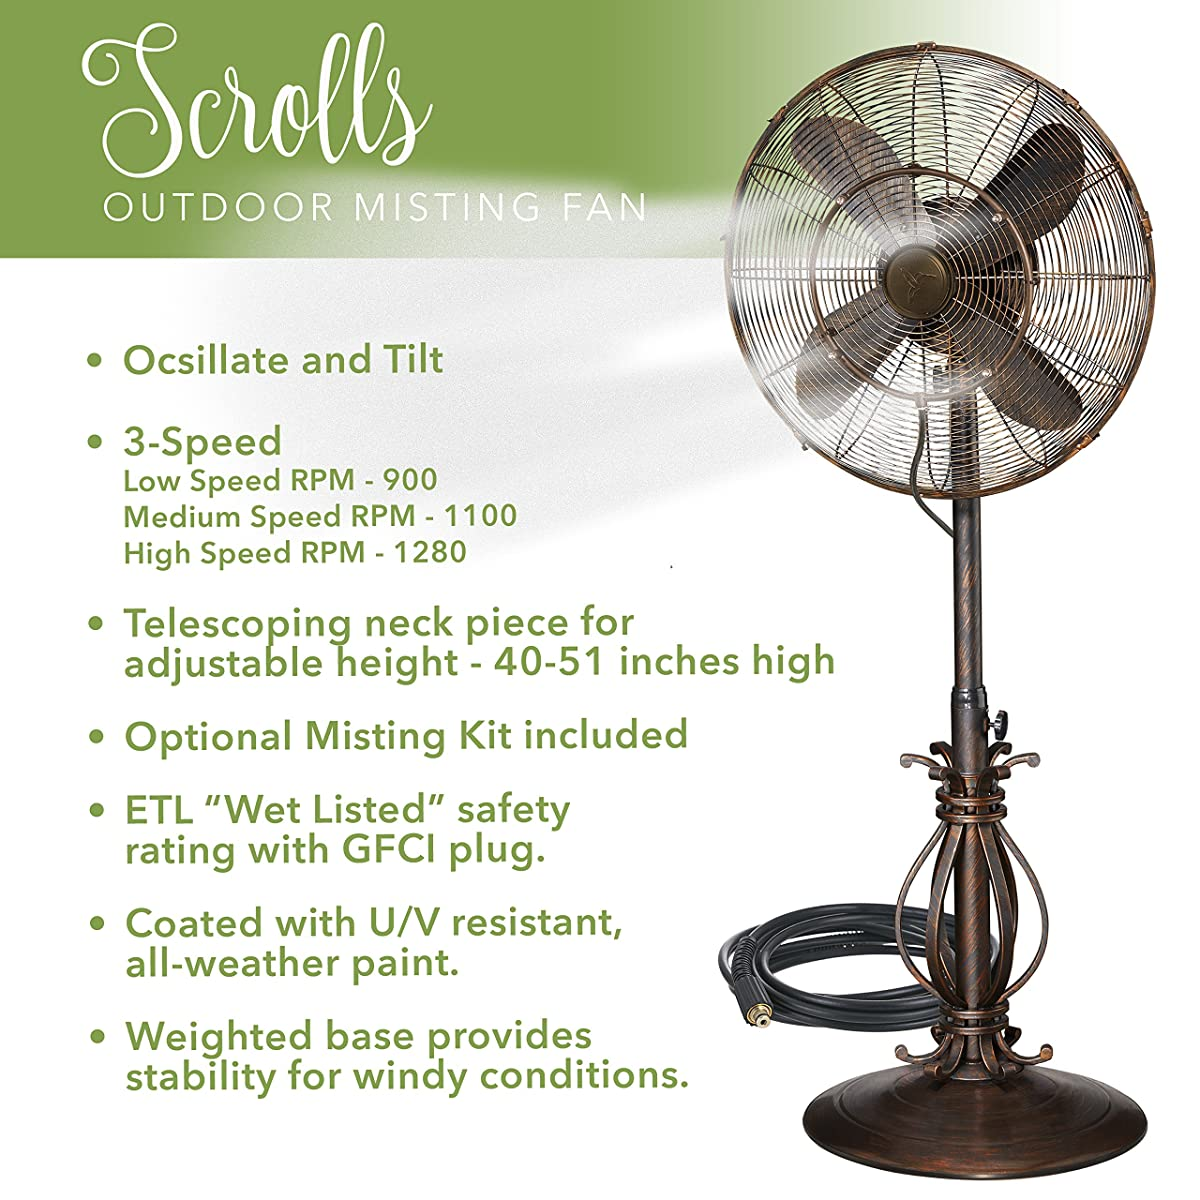 Indoor / Outdoor Misting Floor Standing Pedestal 18 Fan - Gentle Misting Action Keeps You Cool All Summer Long (Scrolls)